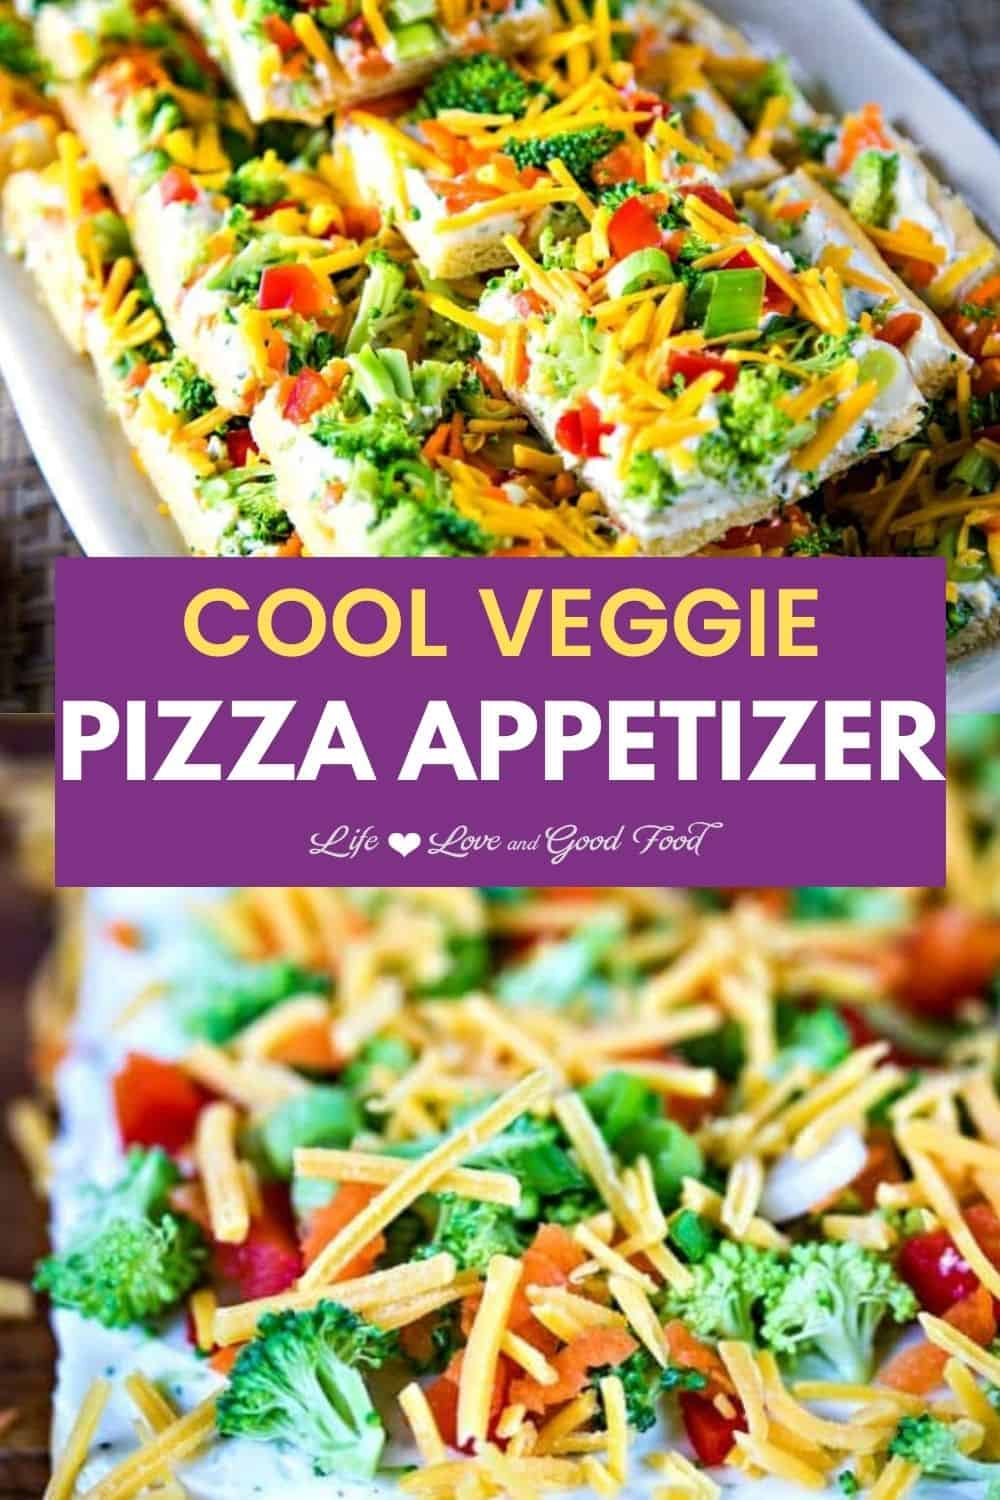 Cool Veggie Pizza Appetizer starts with a refrigerated crescent dough! Top that with a mix of fresh seasonal vegetables—like broccoli, bell peppers, carrots, green onions, and tomatoes—plus shredded cheddar cheese and you have yourself a very colorful and flavorful party appetizer!  #EASY #appetizer #RanchDressing #veggies #partyfood #coldappetizer